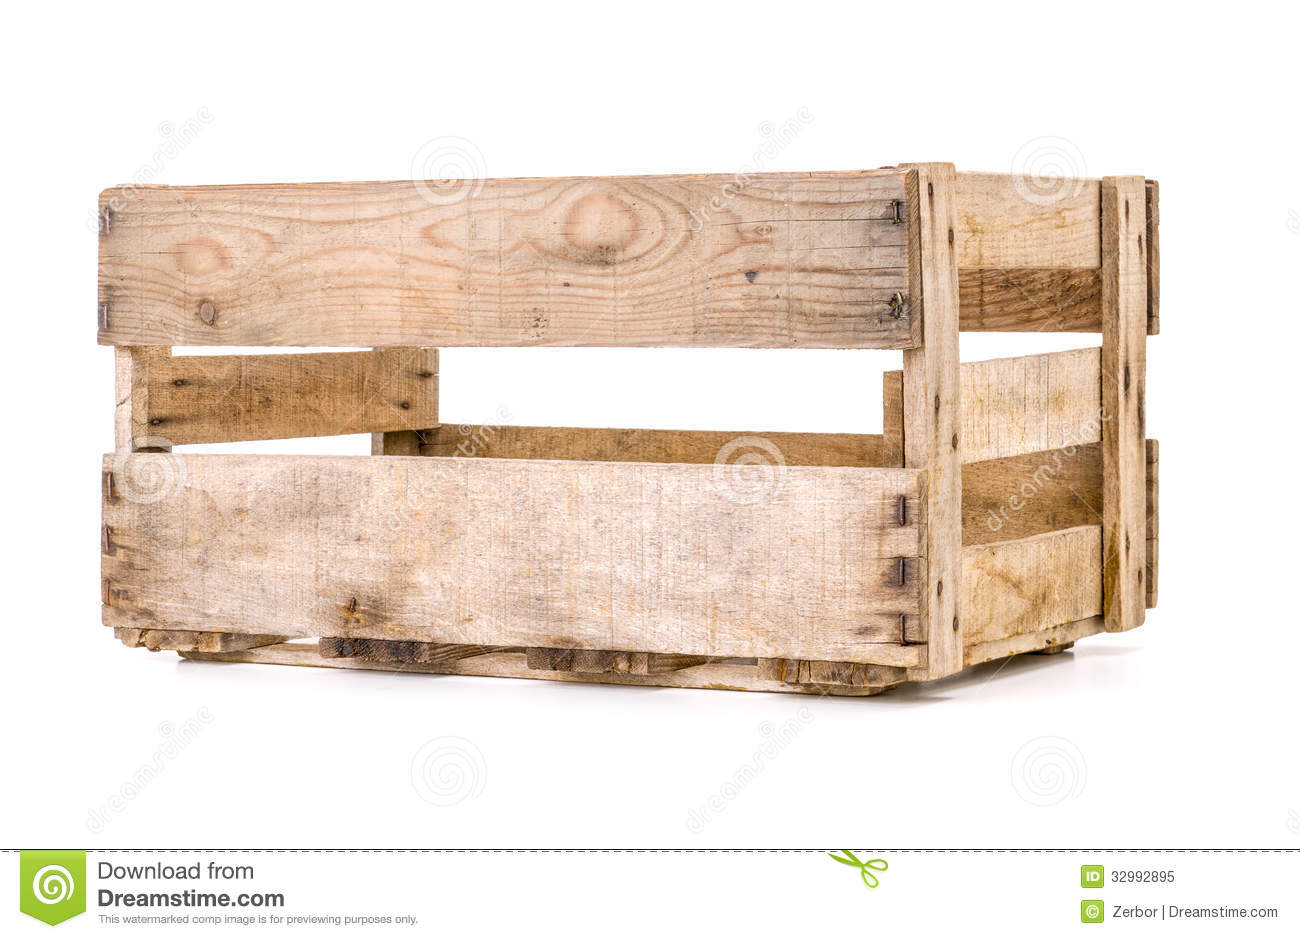 Royalty-Free Stock Photo. Download Old Wooden Wine Crate ...  sc 1 st  Dreamstime.com & Old Wooden Wine Crate Royalty Free Stock Photo - Image: 32992895 Aboutintivar.Com